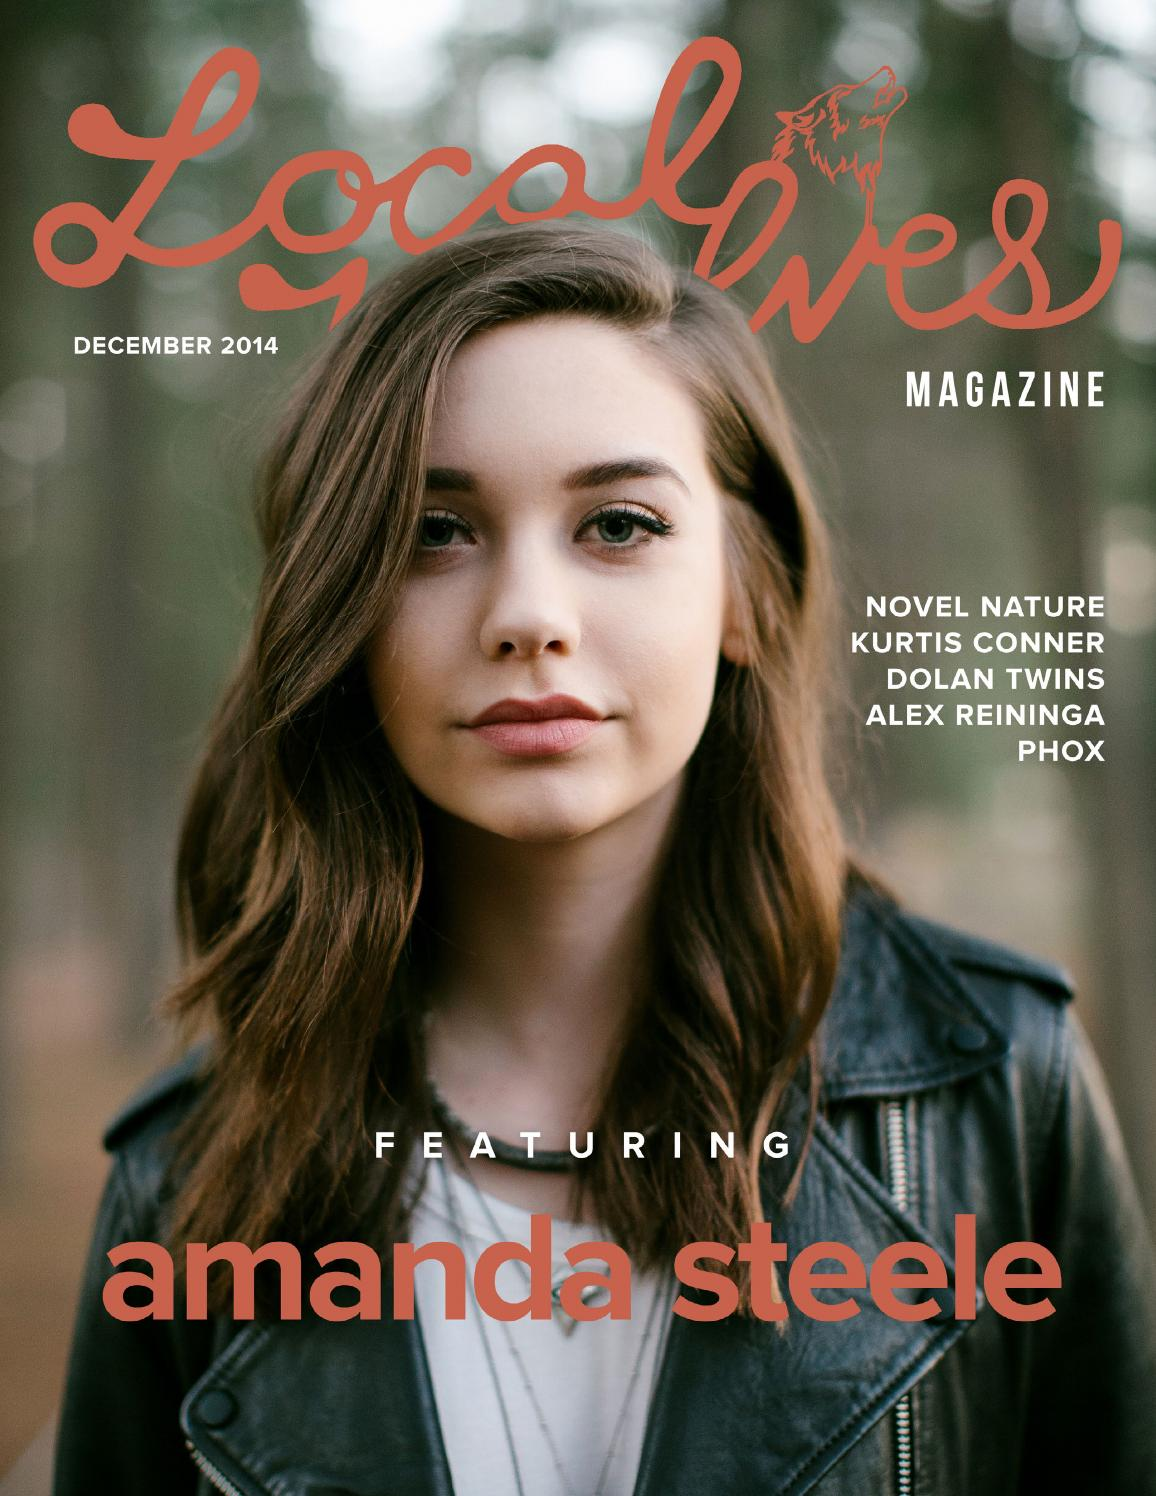 LOCAL WOLVES ISSUE 20 AMANDA STEELE By Local Wolves